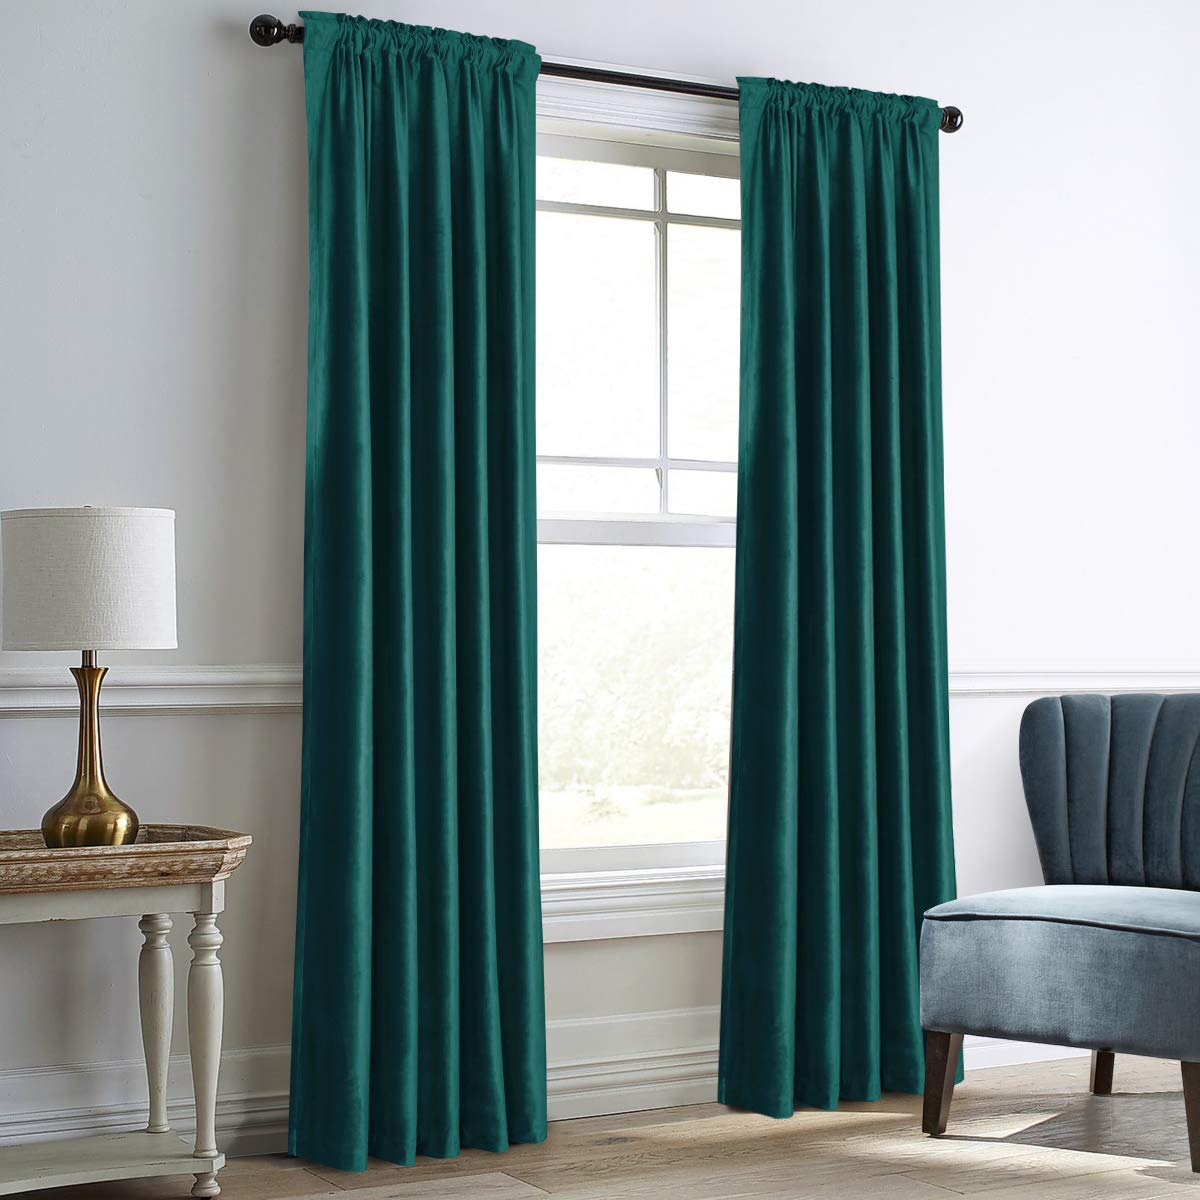 "Dreaming Casa Darkening Teal Velvet Curtains for Living Room,Thermal Insulated Rod Pocket/Back Tab Window Curtain for Bedroom(2 Top Construction Combination,52"" Wx84 L)"